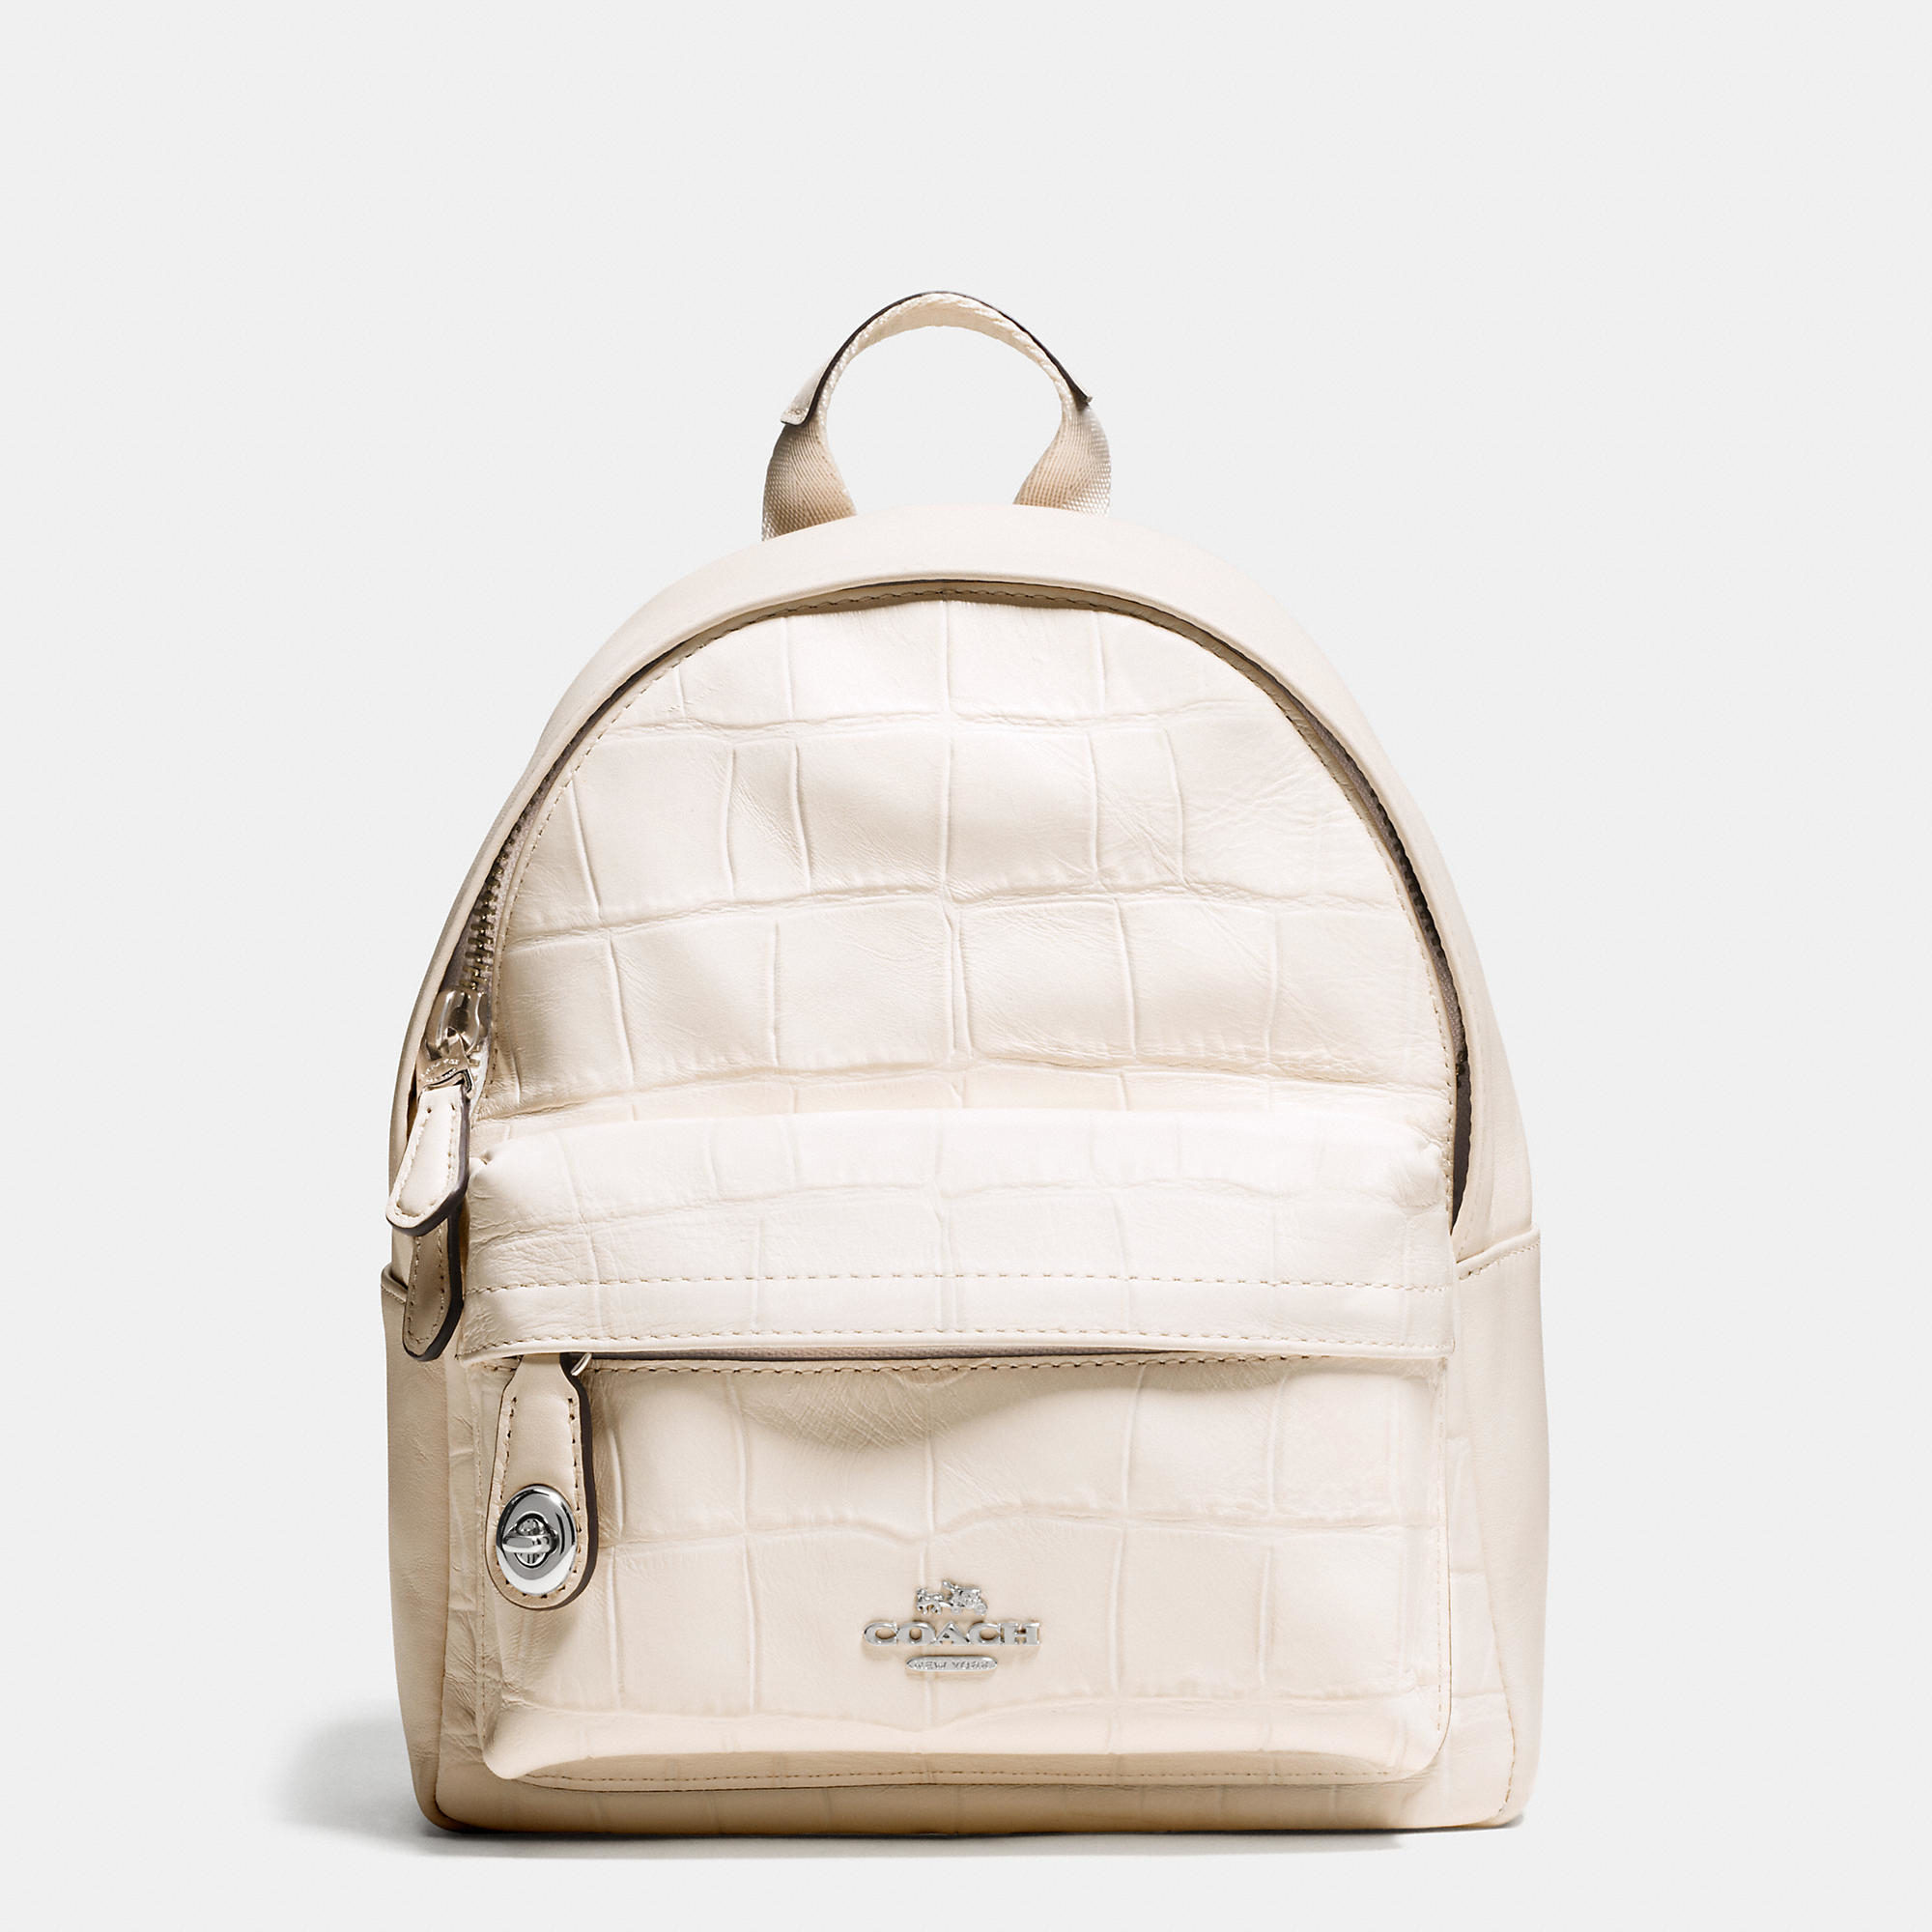 1bacd702f COACH Mini Campus Backpack In Croc Embossed Leather in White - Lyst